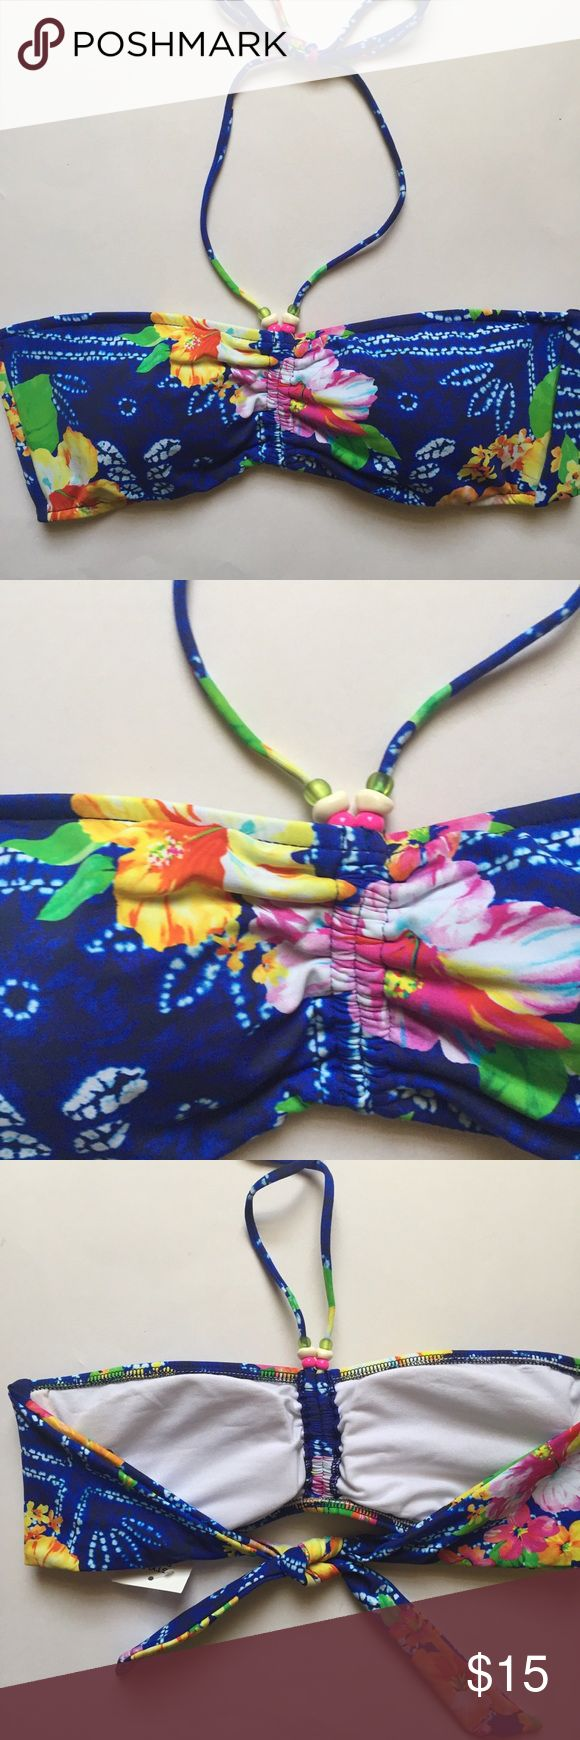 NWT Ralph Lauren floral bandeau top Fun beads at the base of the halter ties, removable pads and side wires for extra support; goes well with many solid color bottoms ( see last pic for suggestion) ; this listing is for the top only - bundle and save! Polo by Ralph Lauren Swim